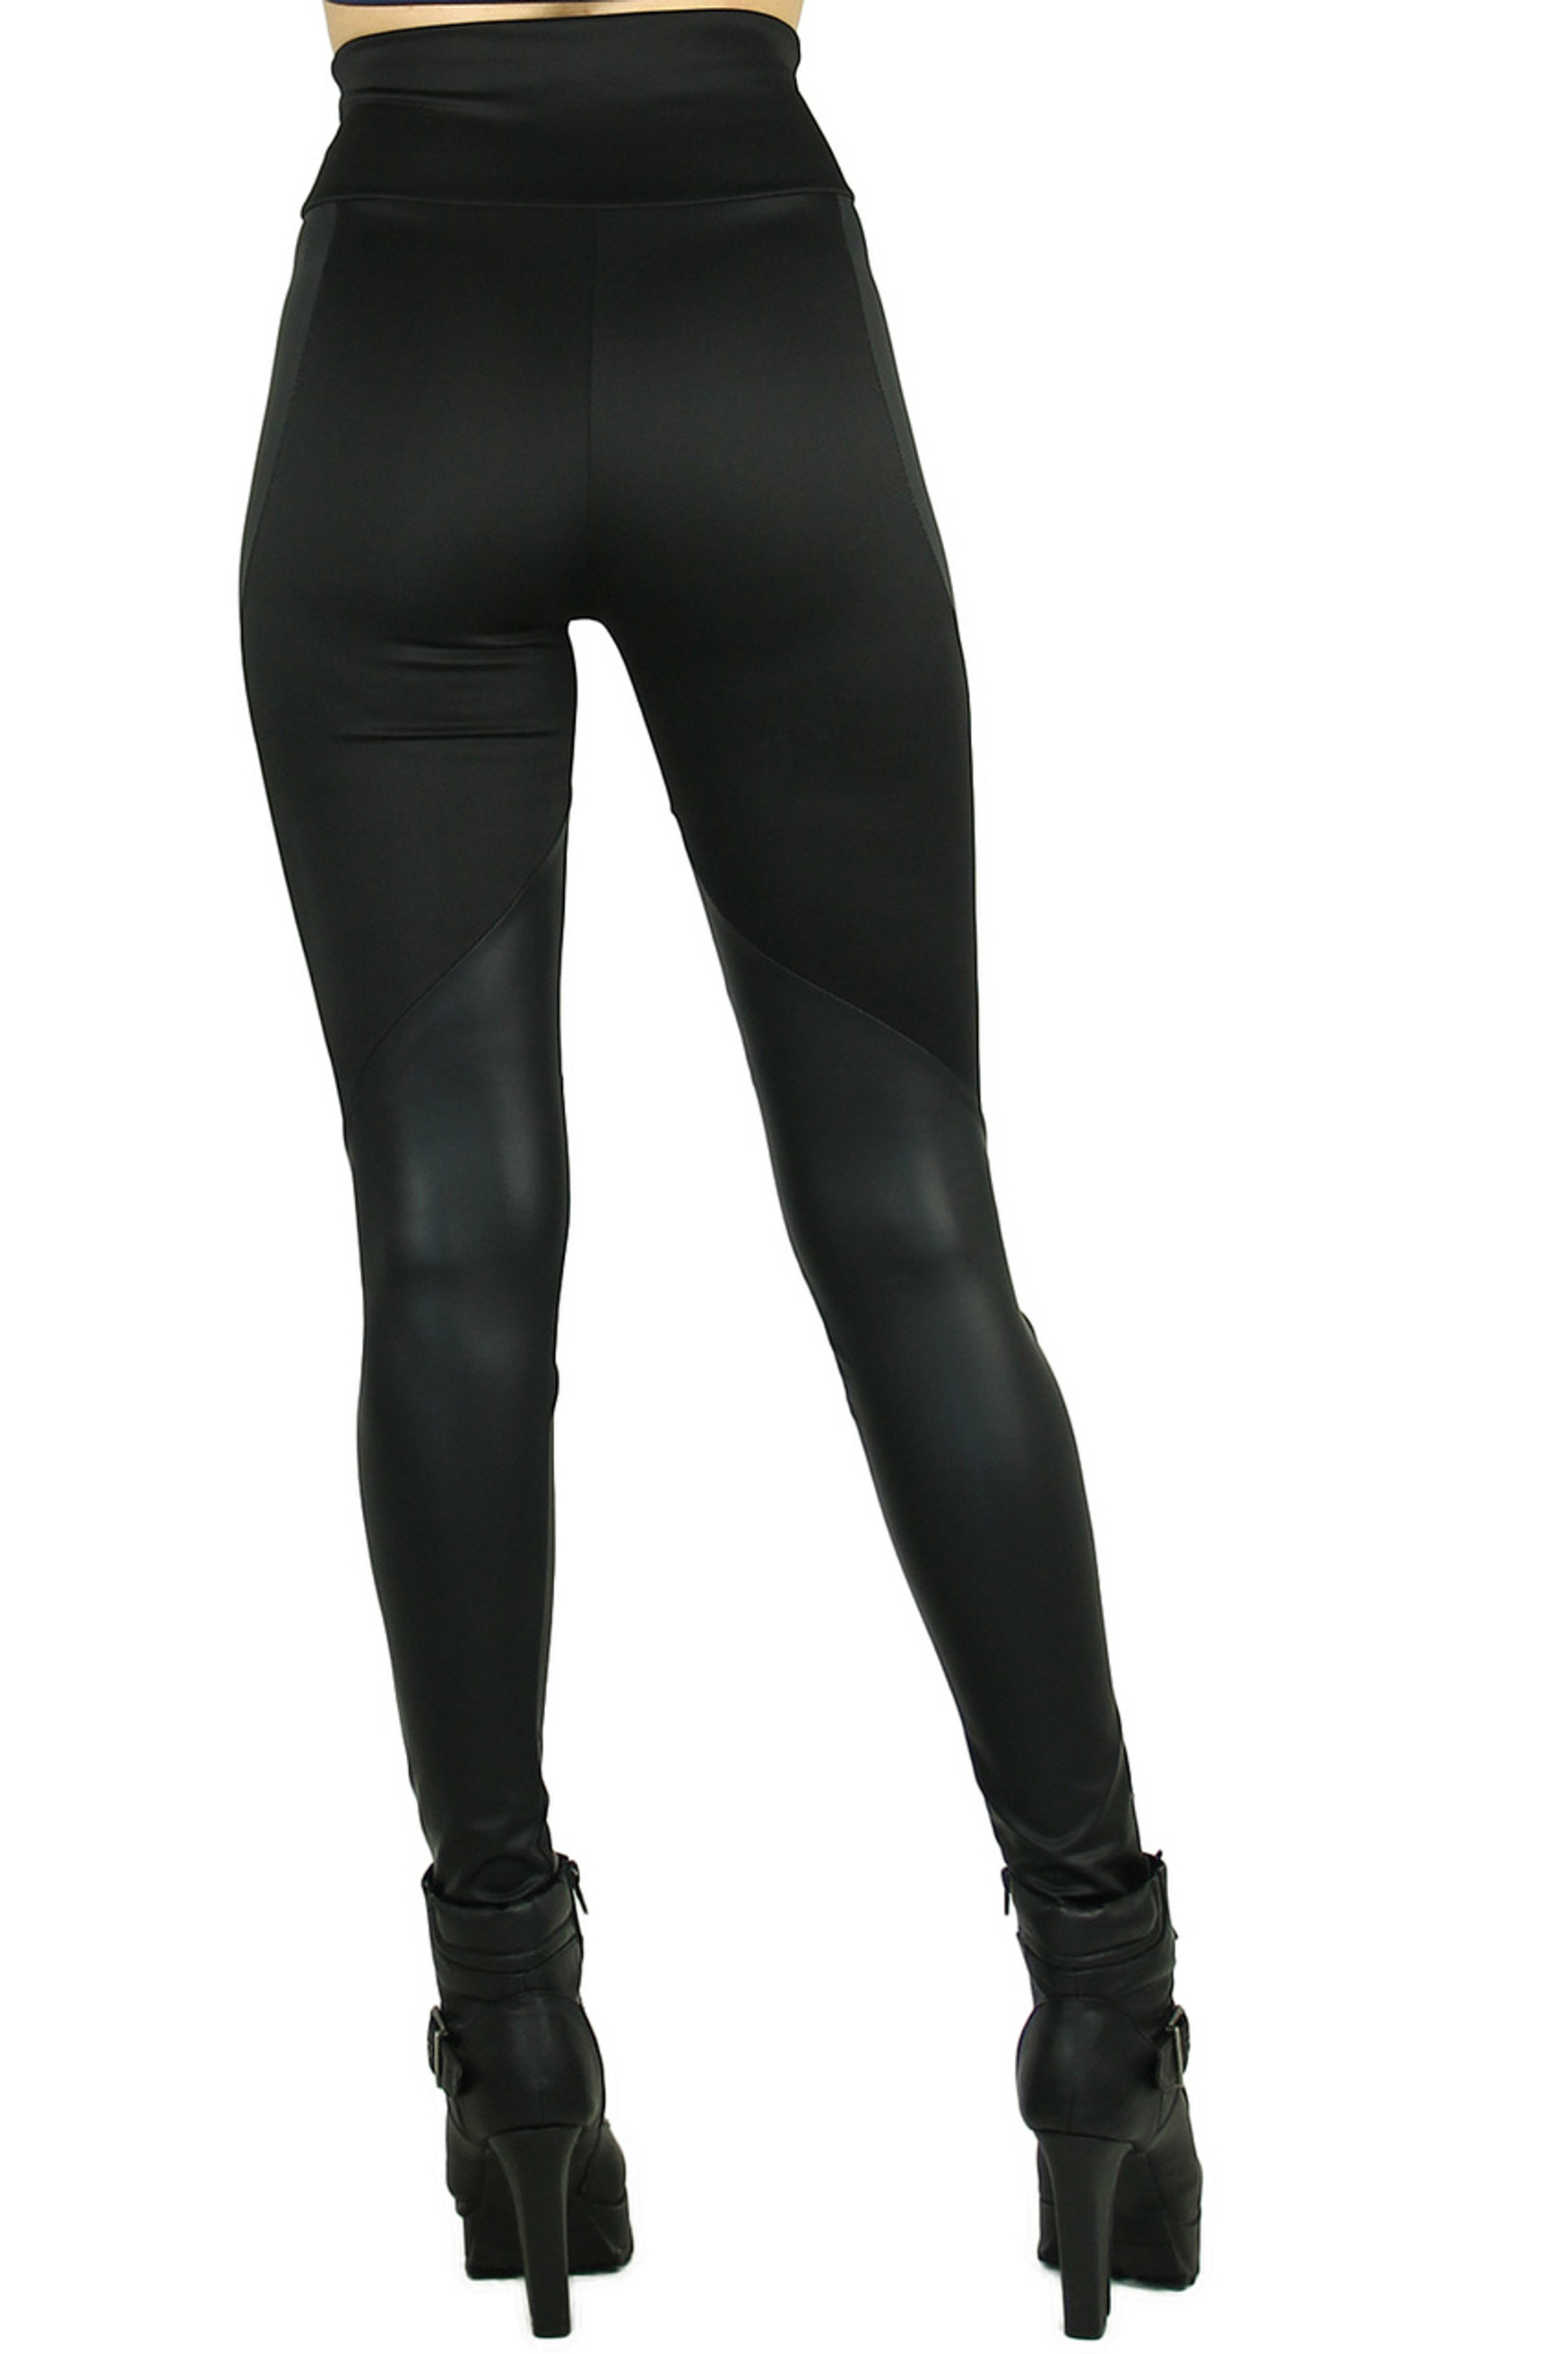 Chatelaine High Waisted Faux Leather Leggings